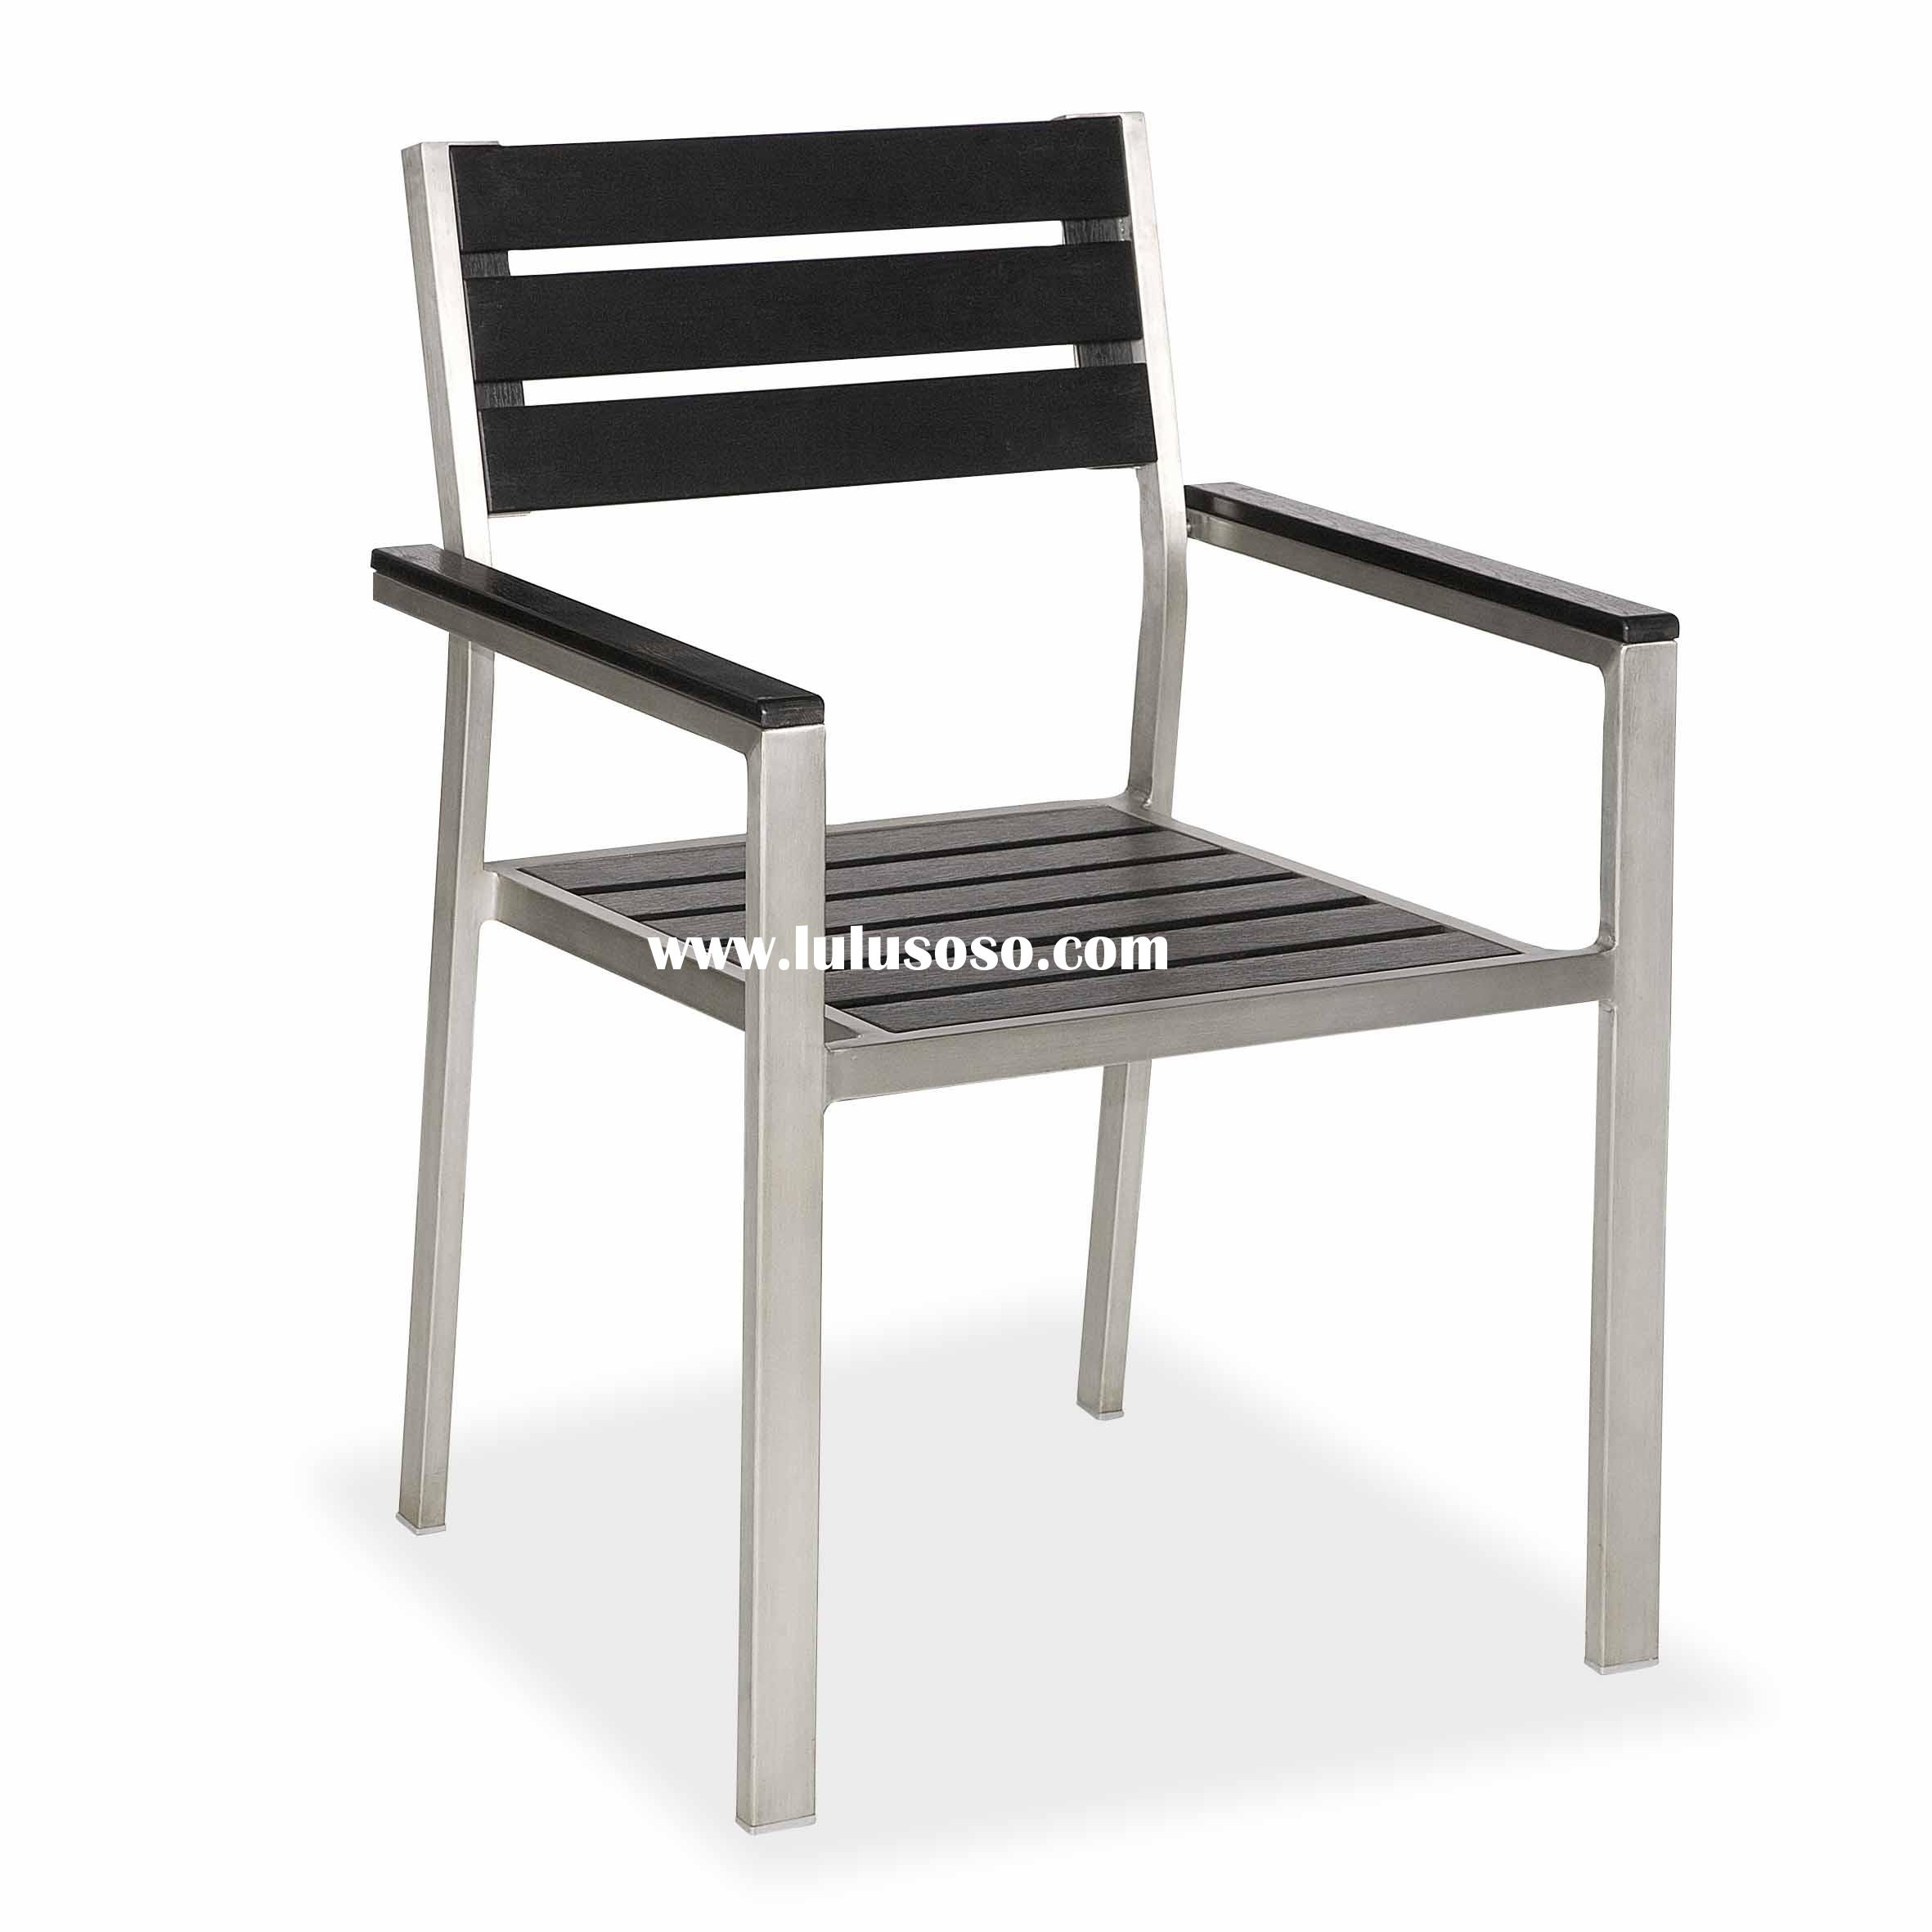 Steel frame chair steel frame chair manufacturers in for Steel outdoor furniture